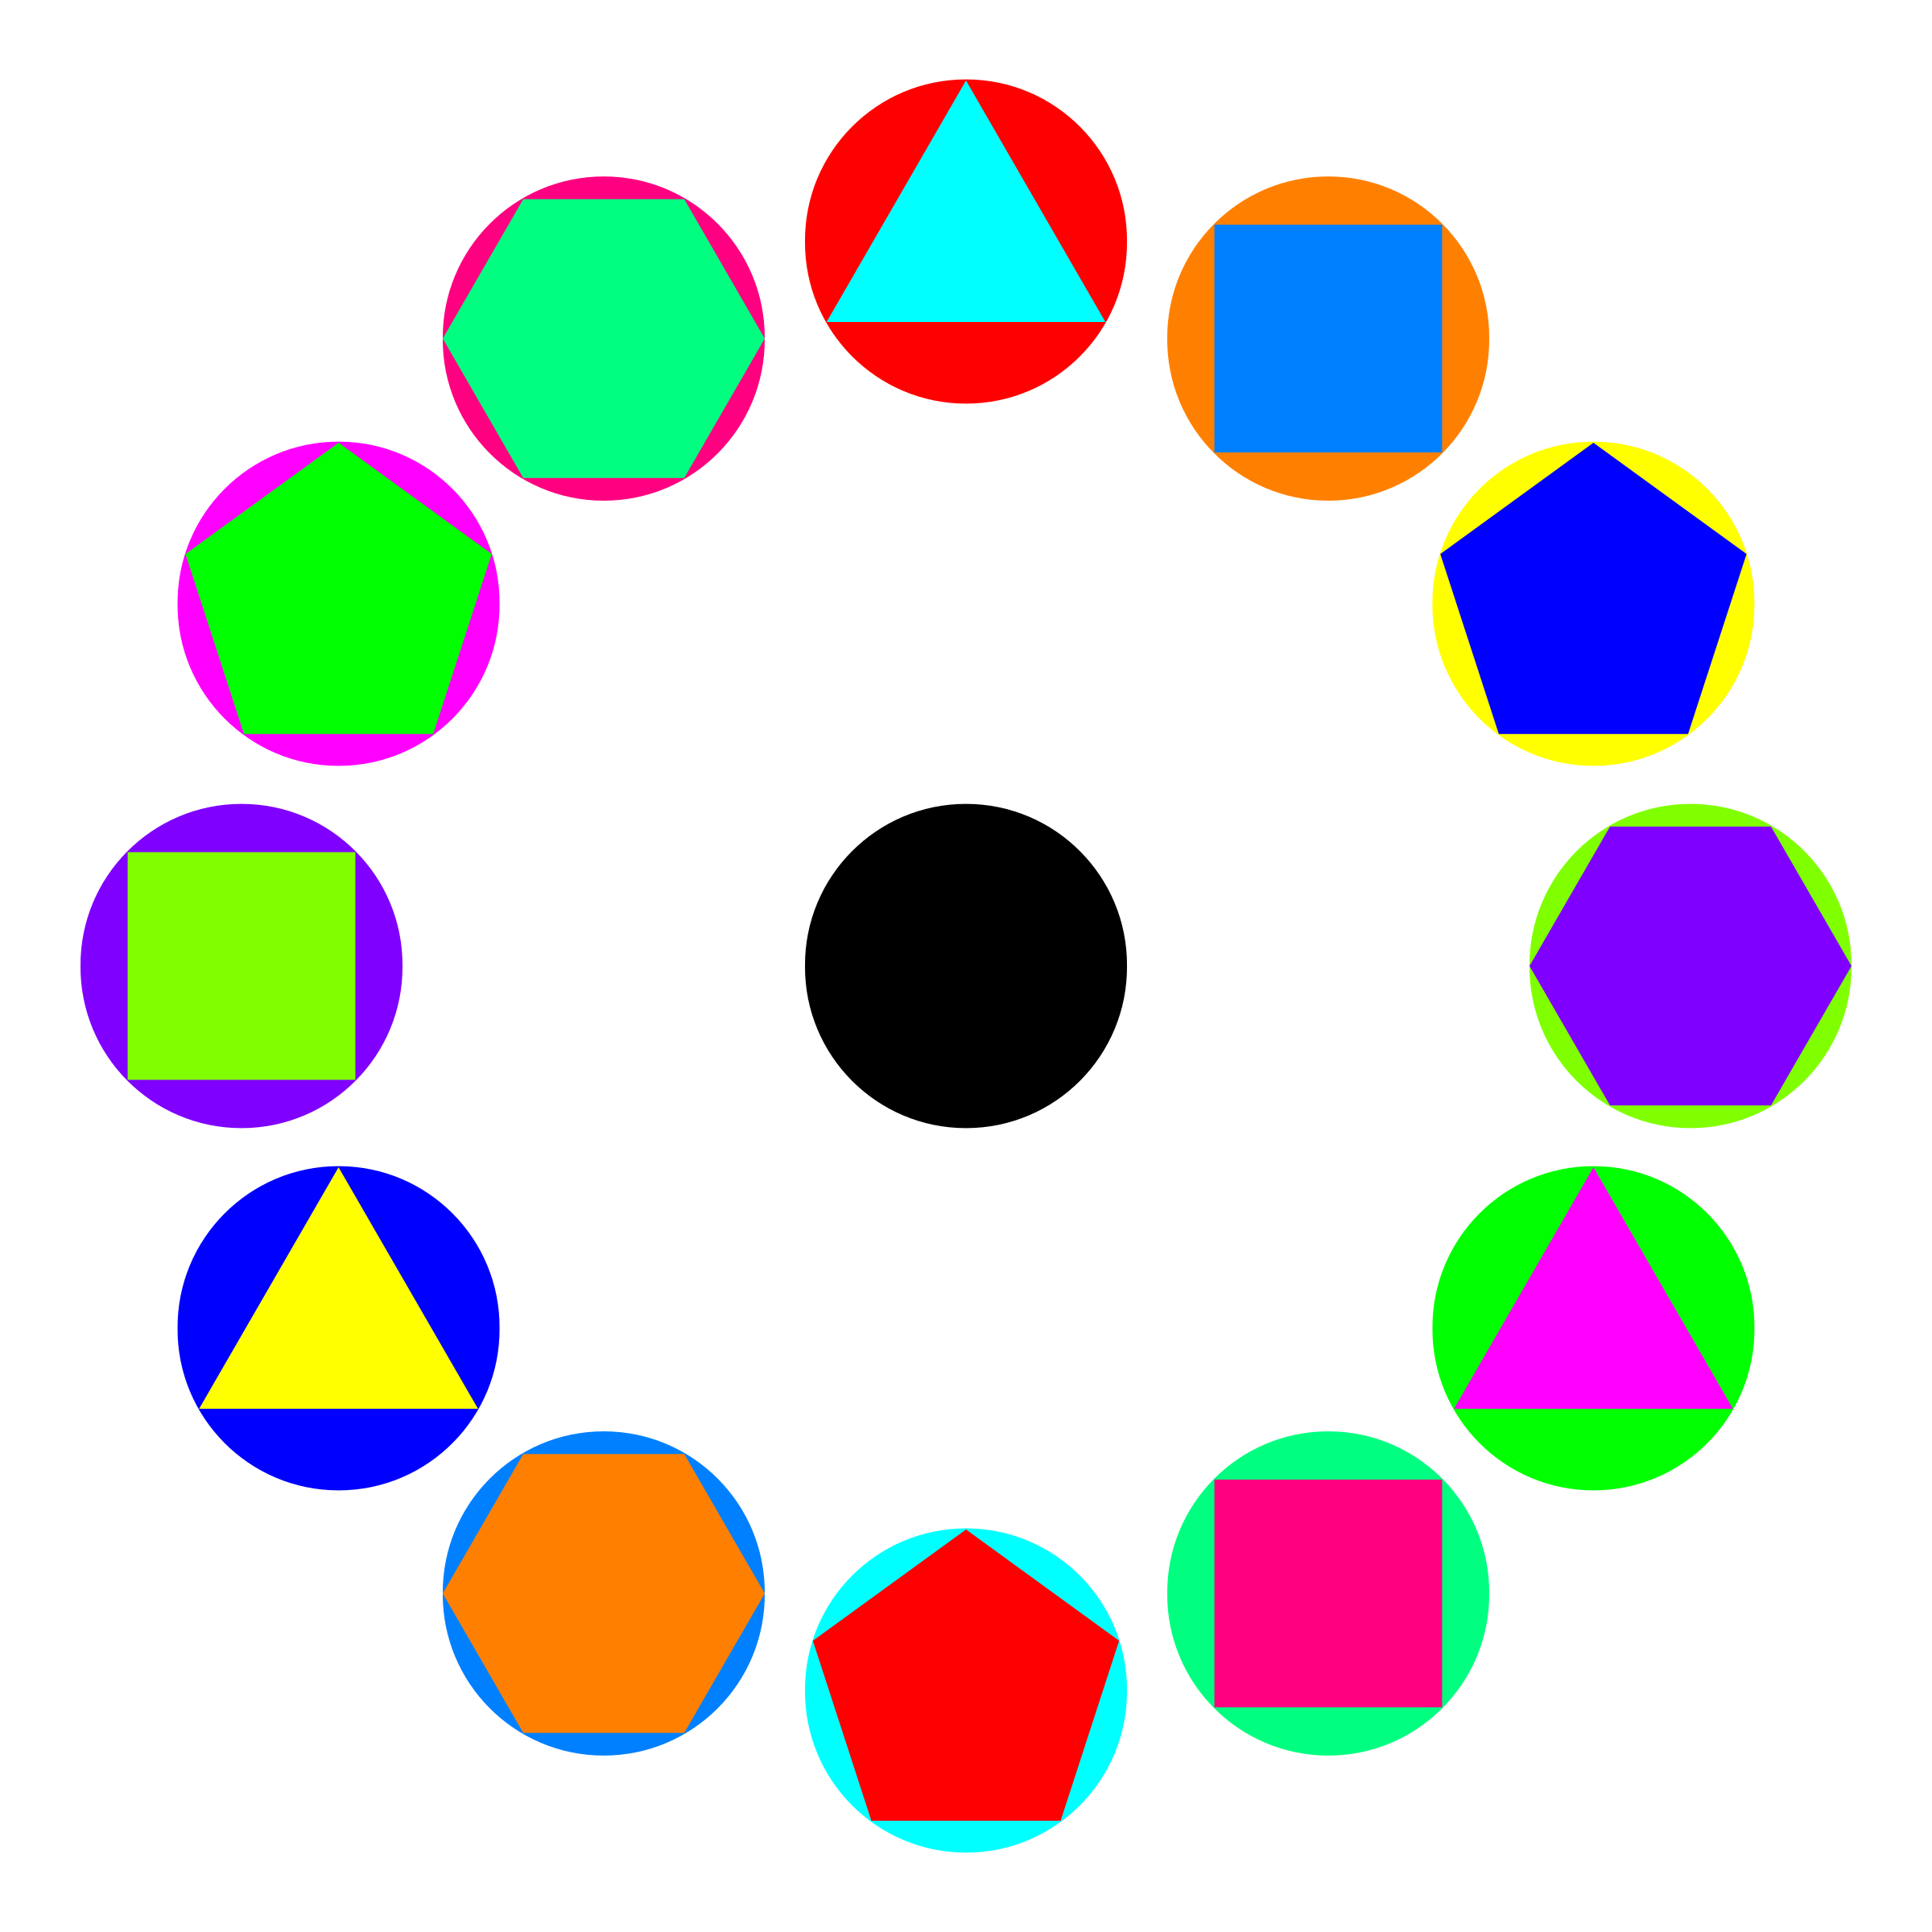 4 polygons in circles rainbow by 10binary